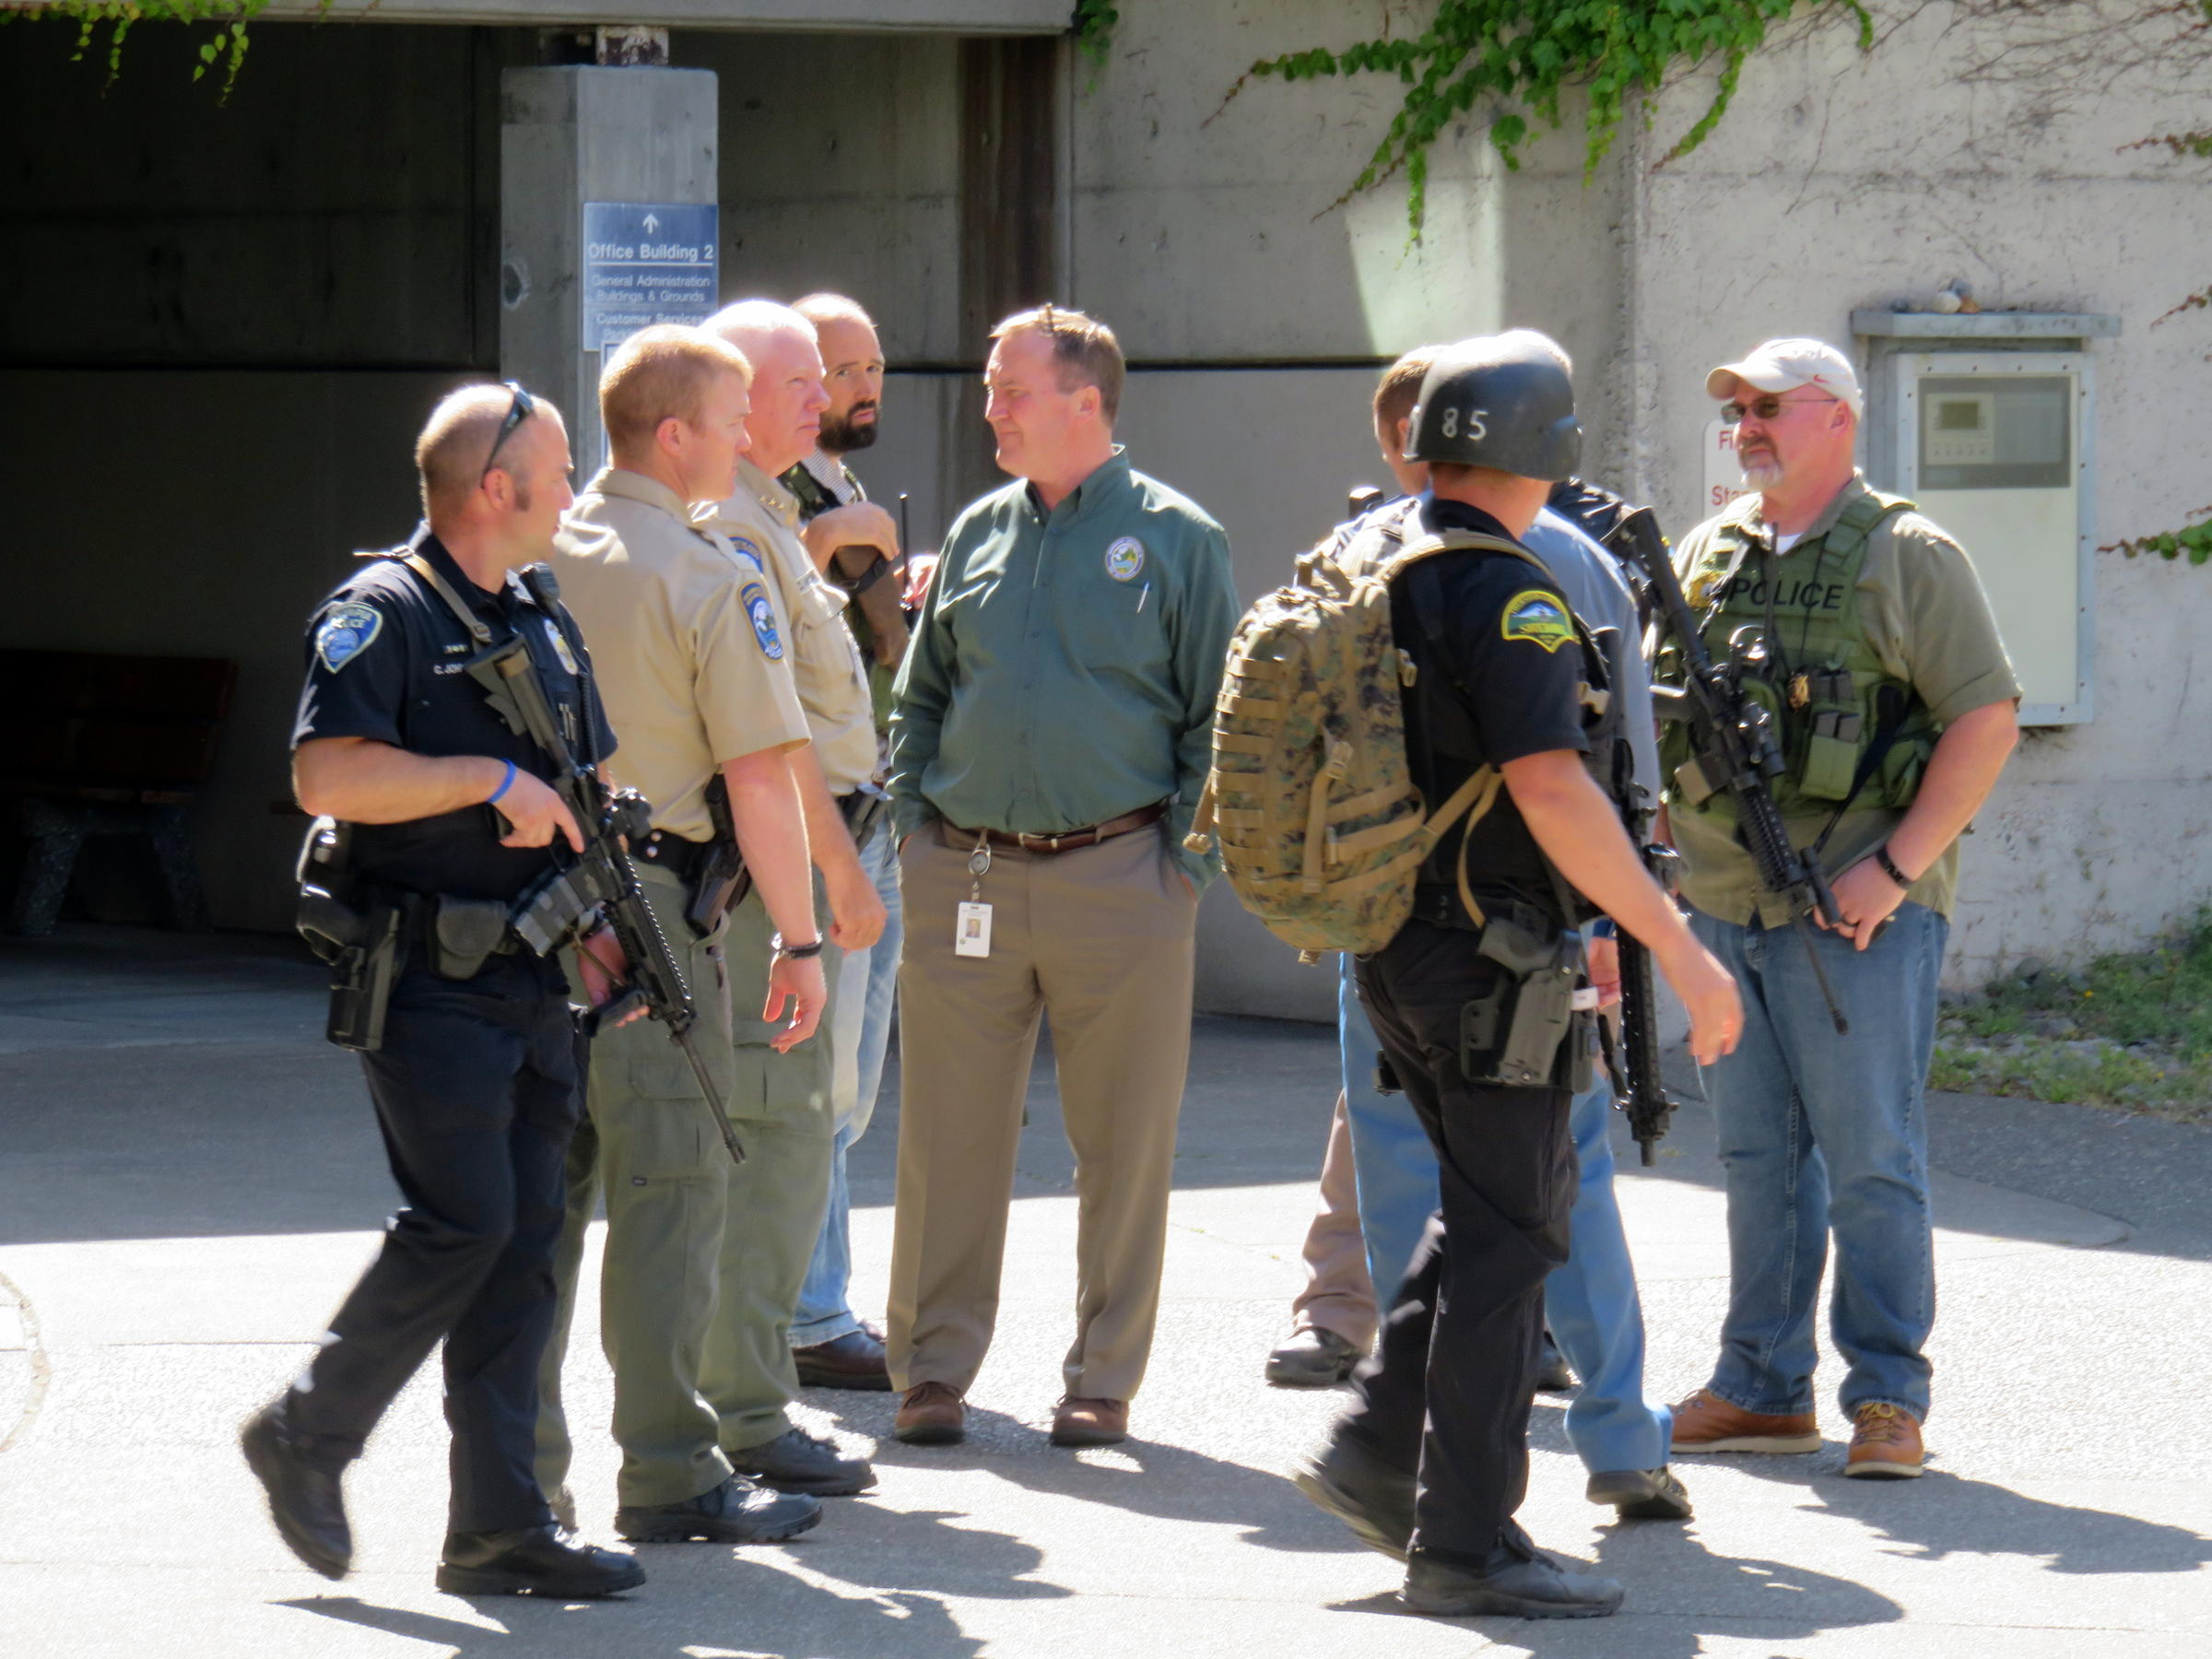 Heavily armed officers swarmed the Washington State Capitol Campus on Wednesday after an unconfirmed report of gunshots